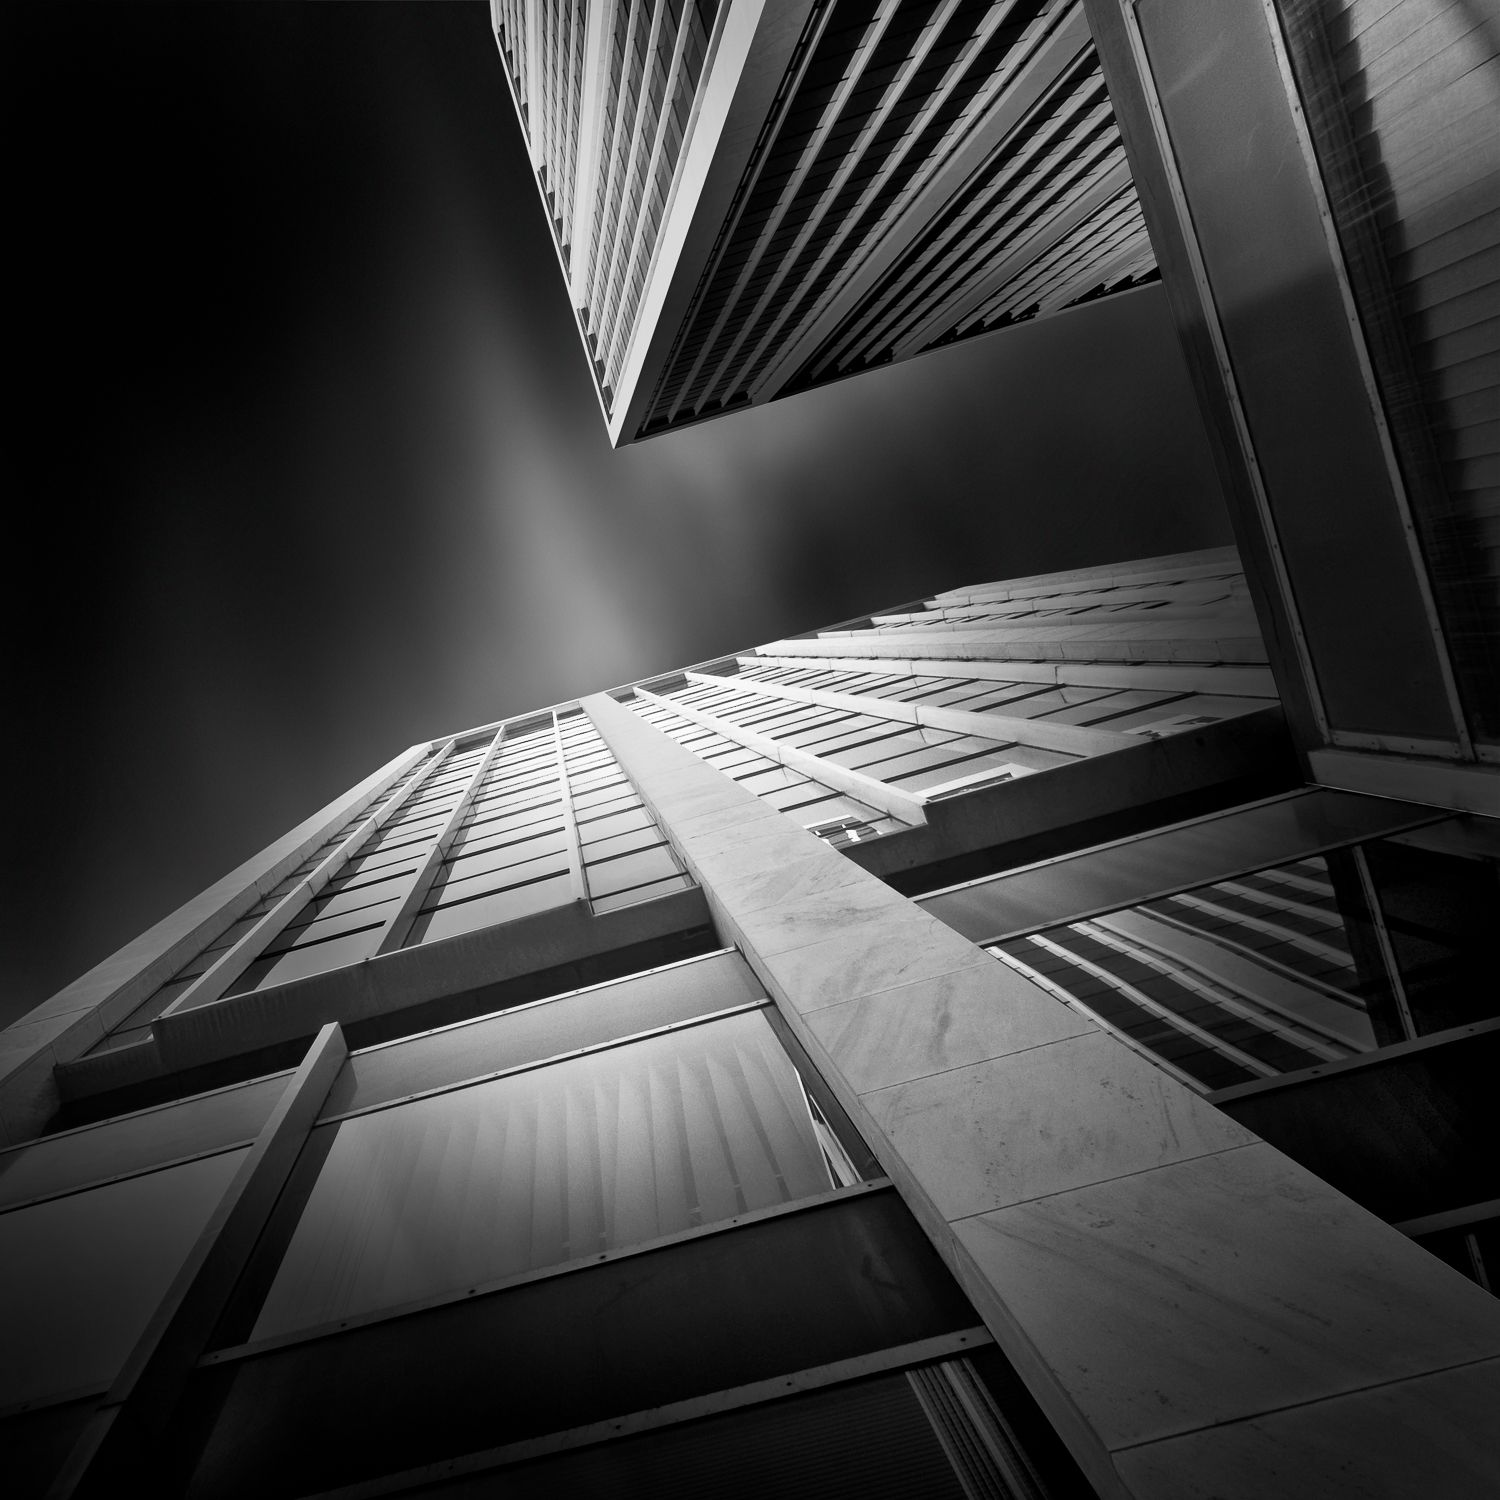 Architecture Photography Blog fine art architectural photographyjulia anna gospodarou